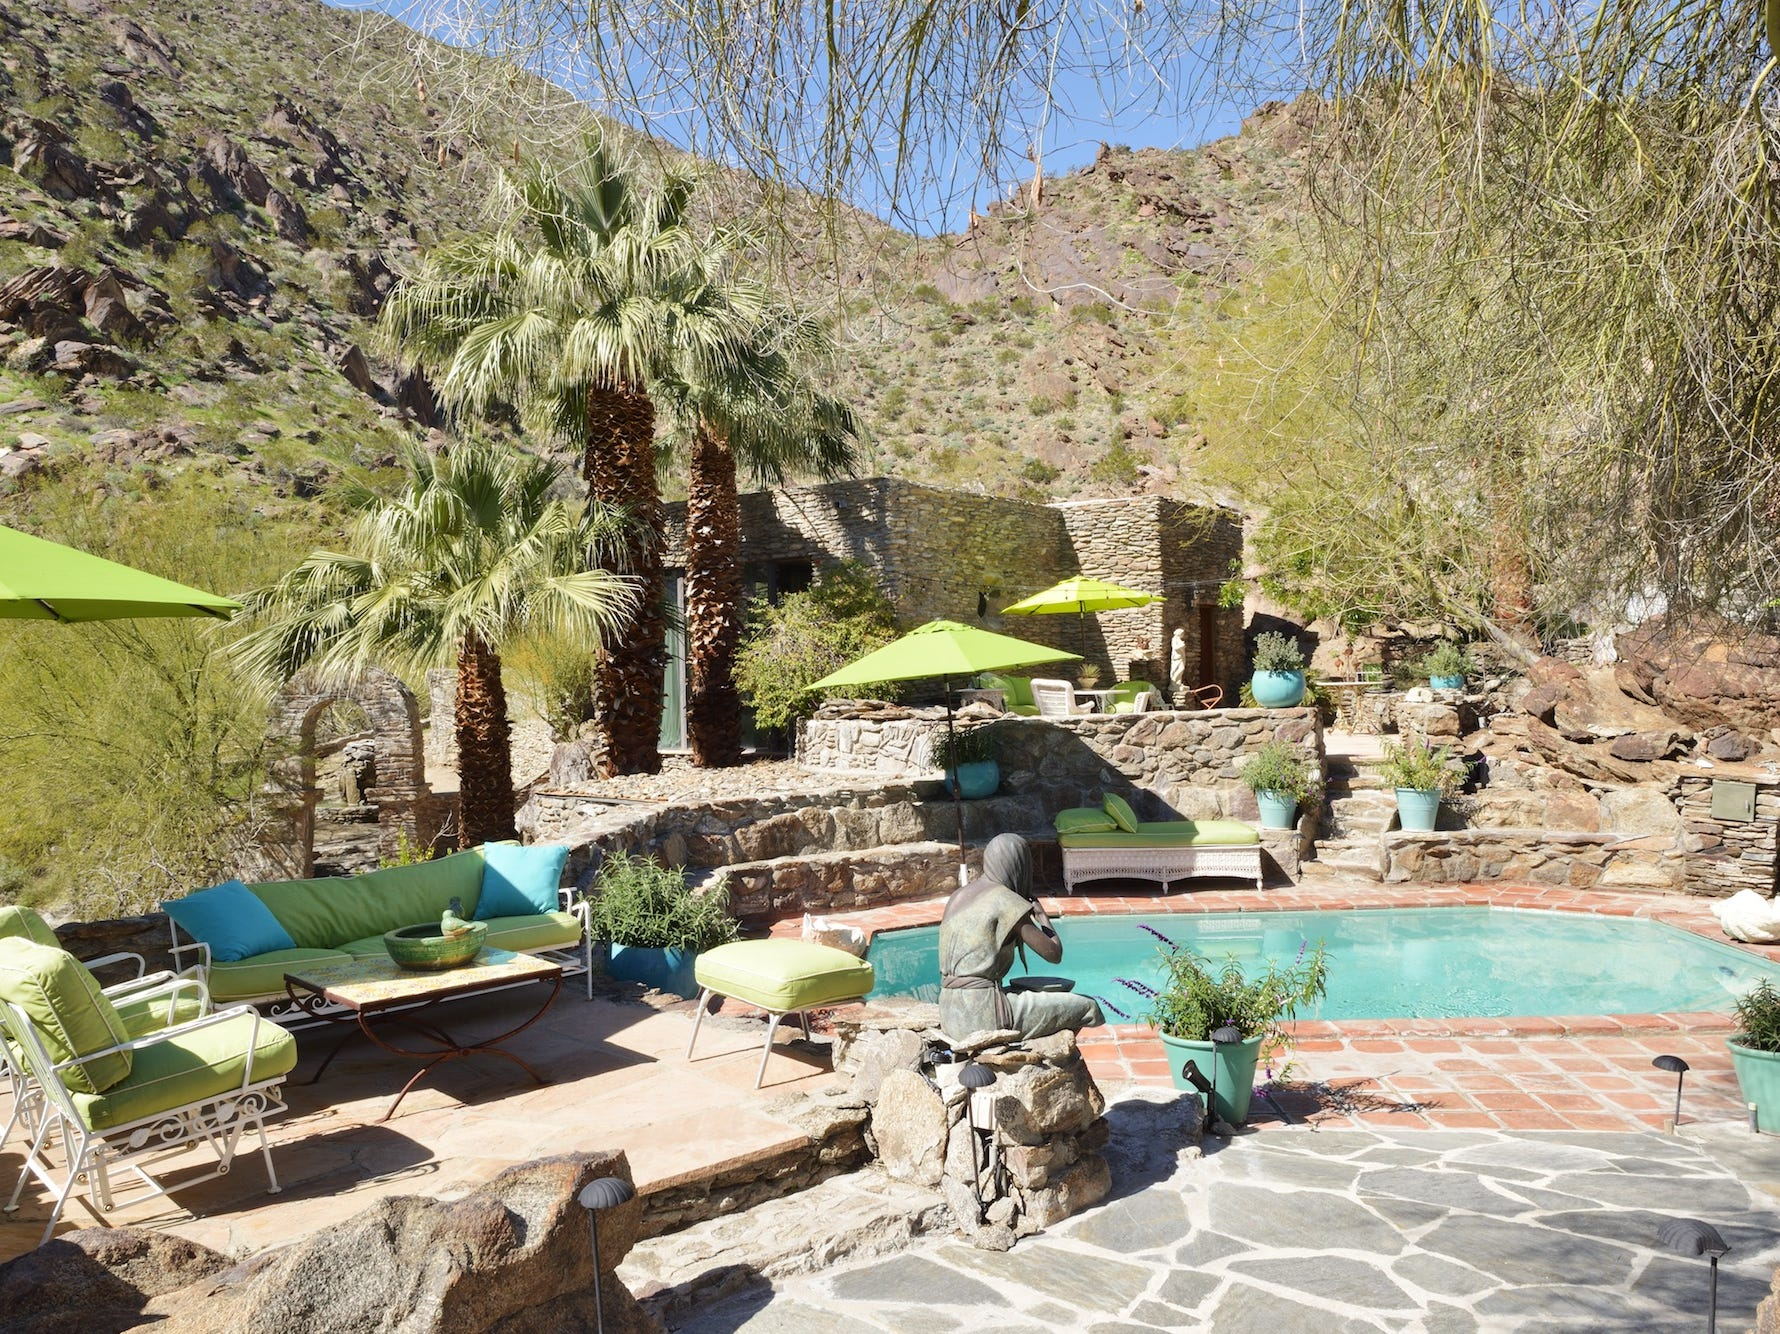 Suzanne Somers has listed her Palm Springs compound for $9.5 million